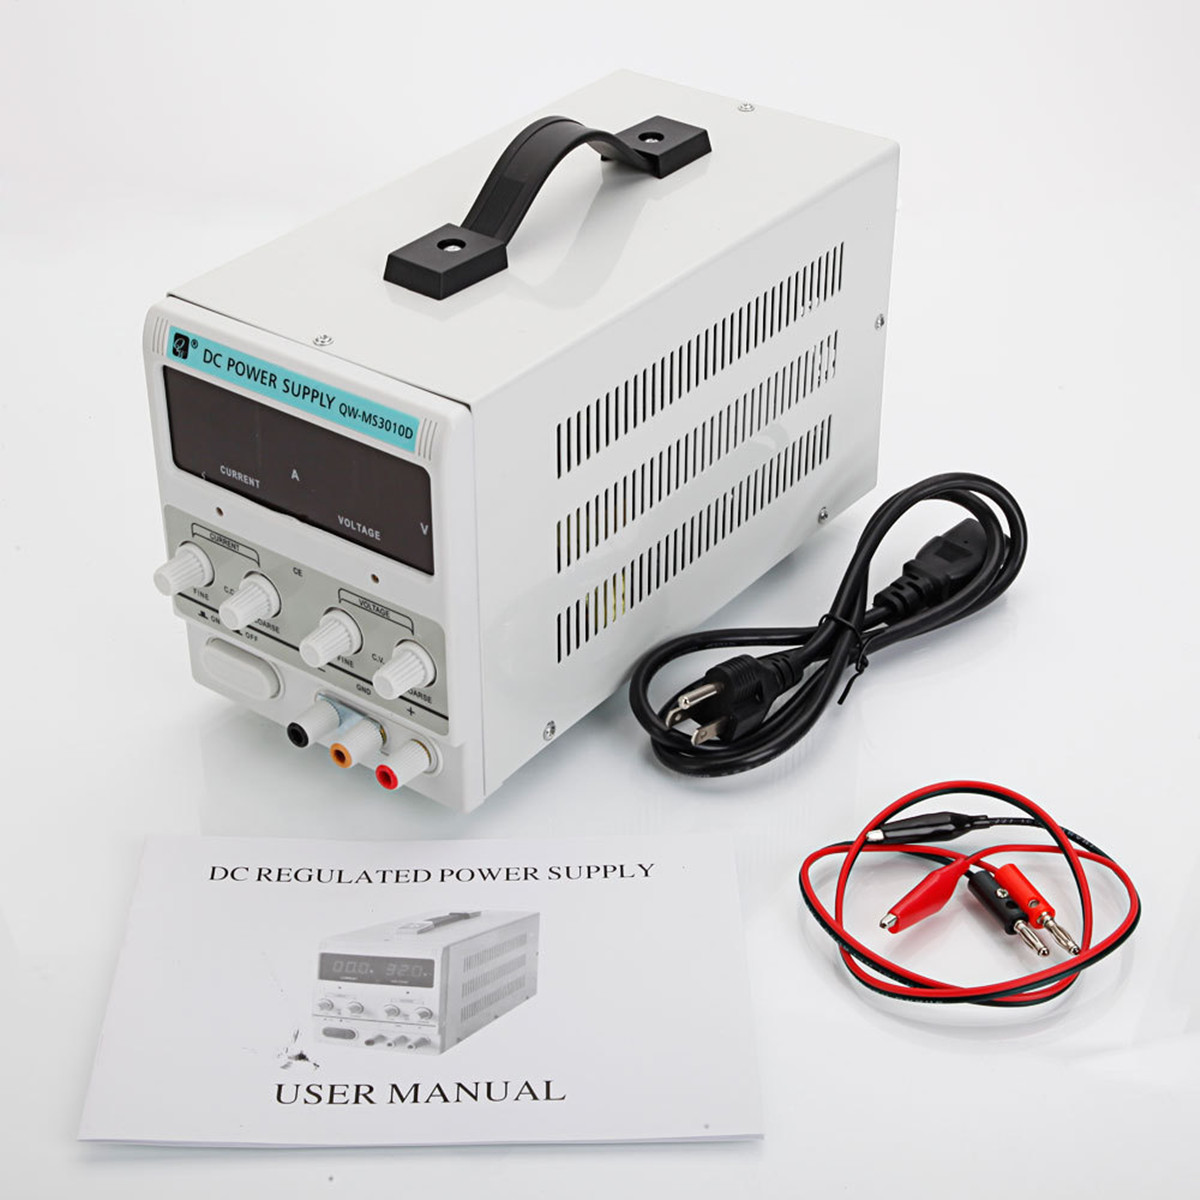 DC Power Supply Precision Variable Digital Adjustable 30V 10A 50/60Hz Clip Cable UK/AU/US Plug Steady LED Display Protection